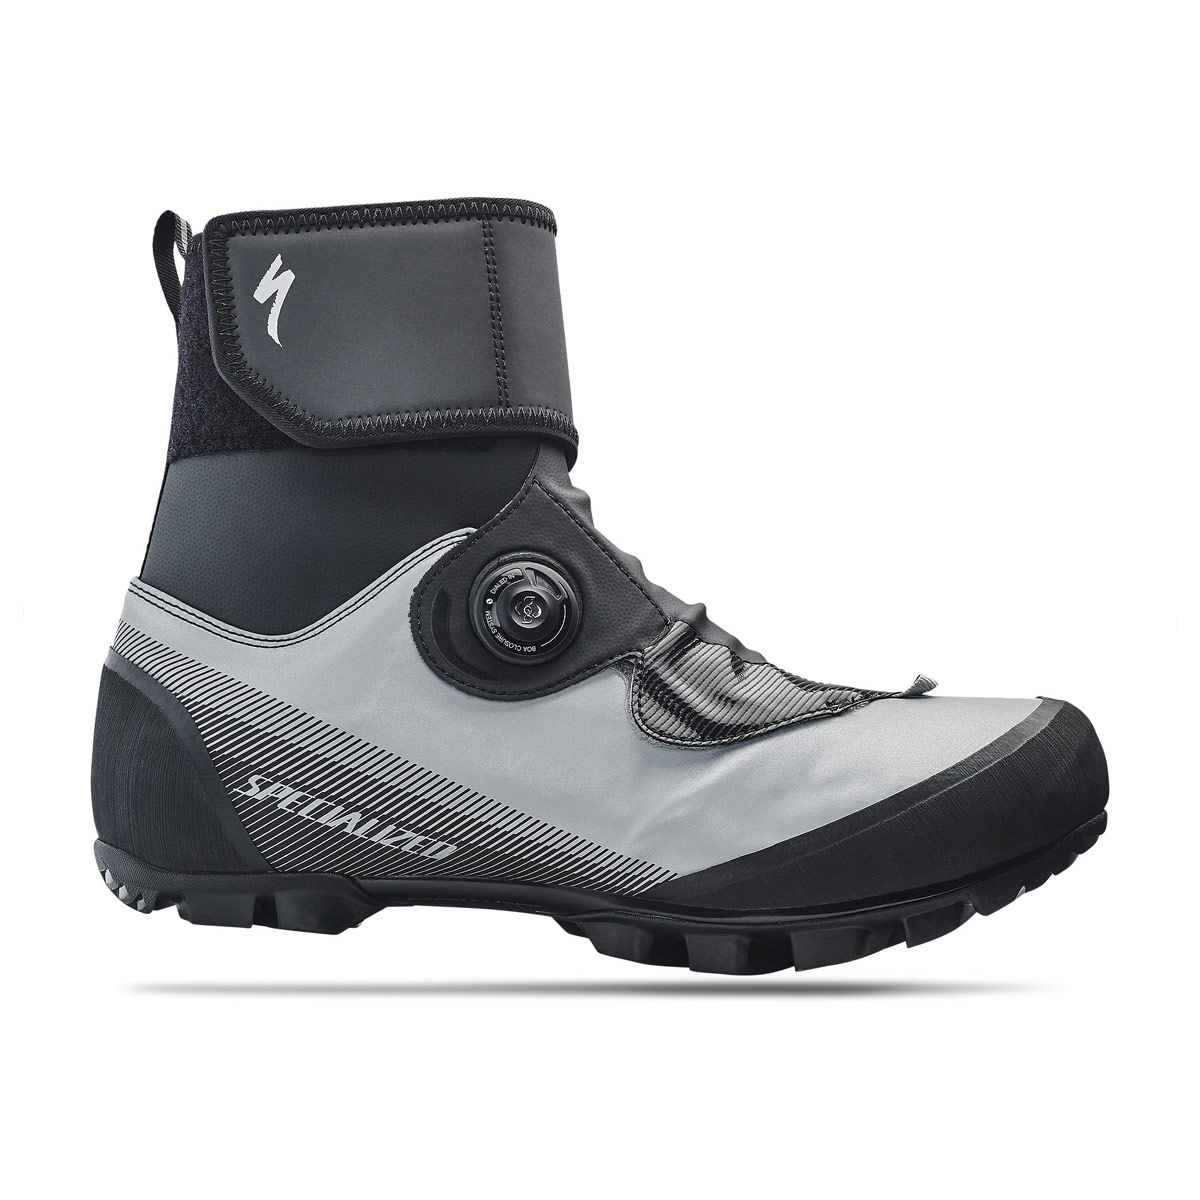 CHAUSSURES NOIR GRISE HOMME SPECIALIZED DEFROSTER TRAIL MTB